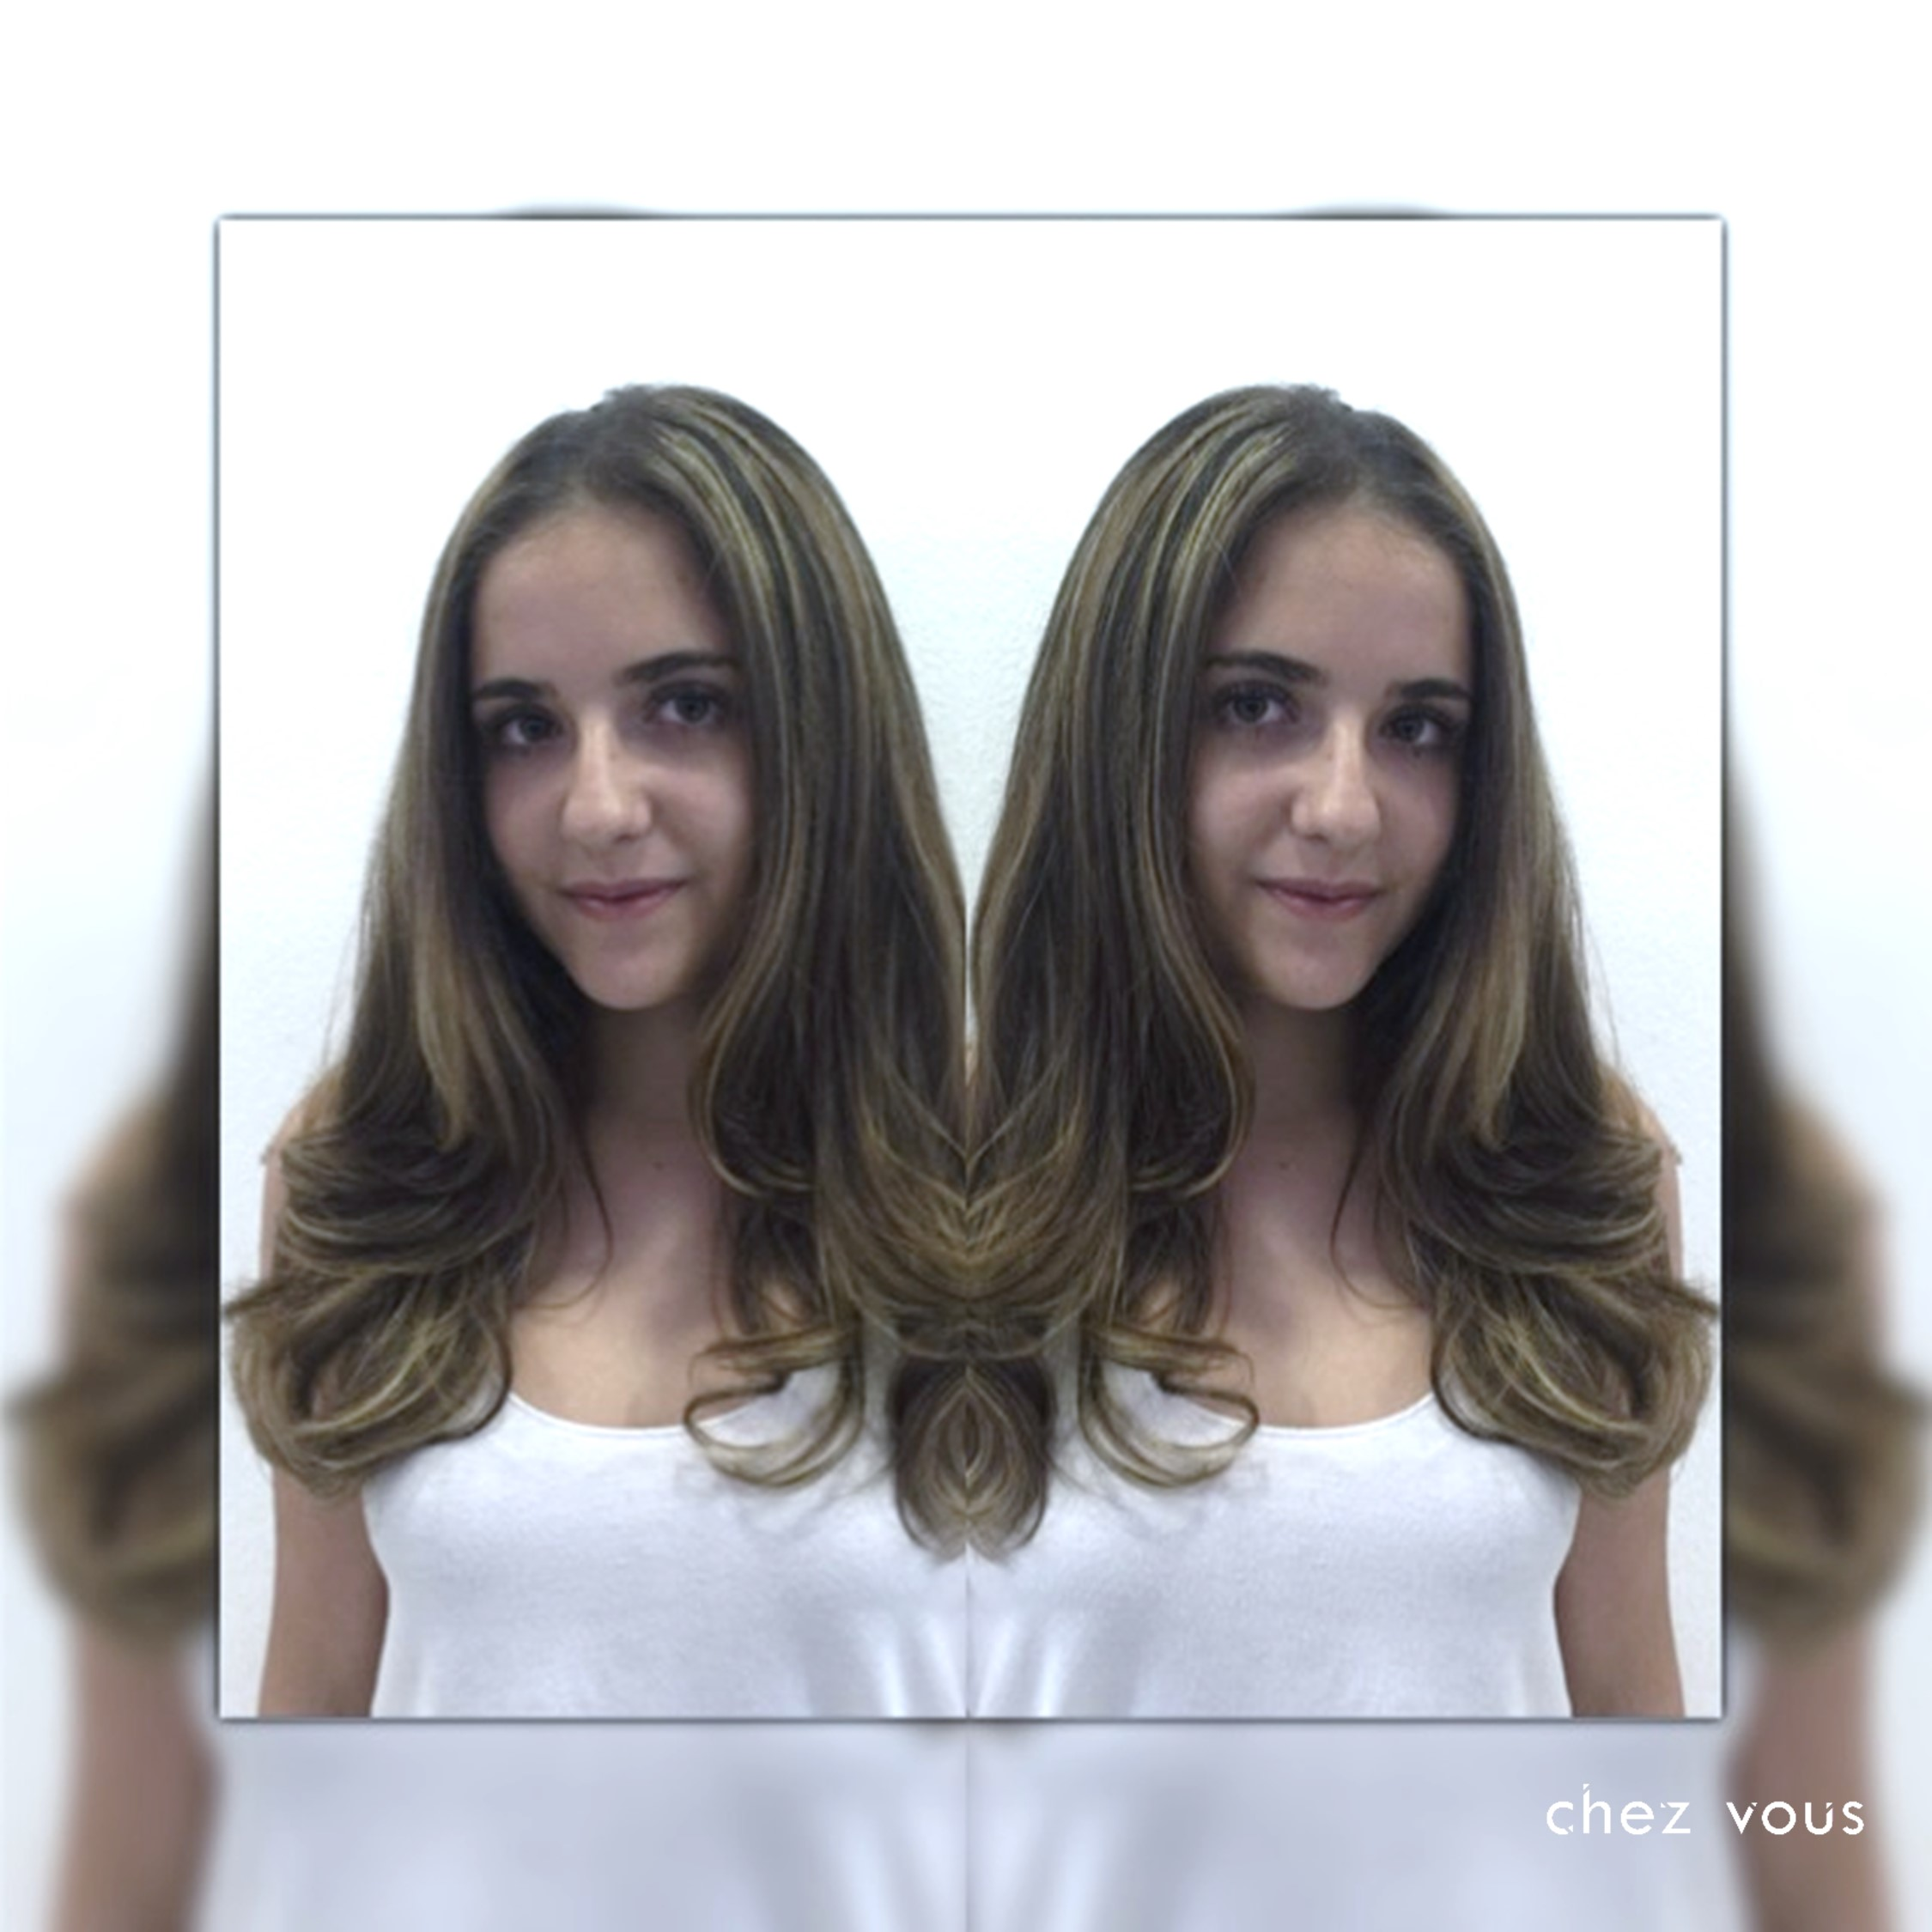 Done by Salon Director of Chez Vous: Serene Tan | Design: Melted Ash Brown Balayage Version II